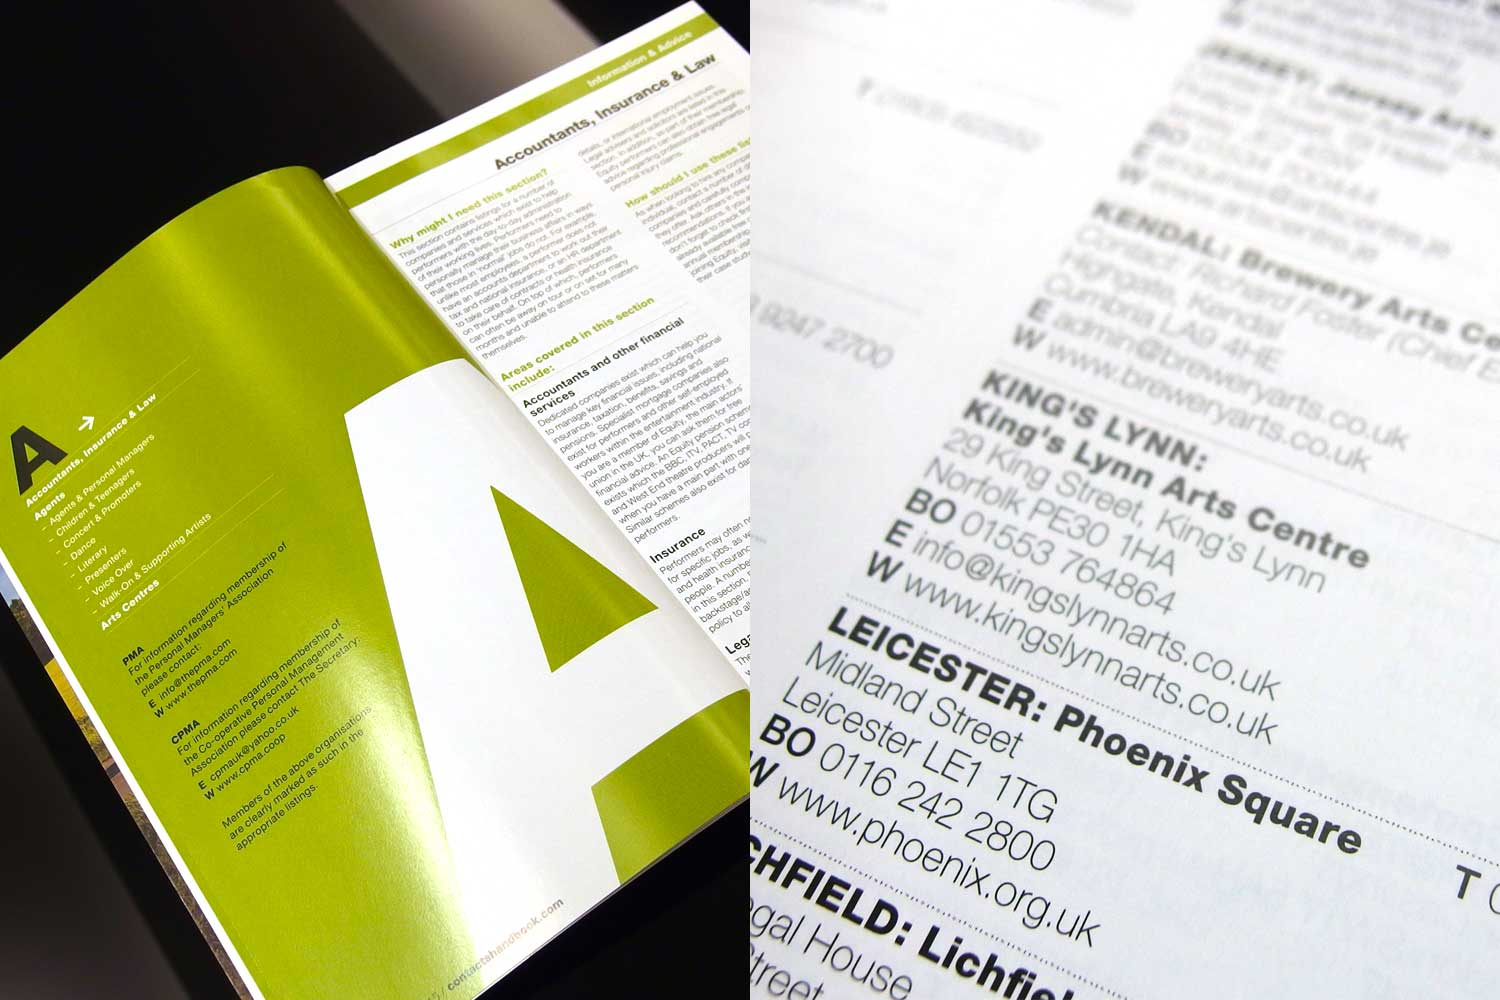 Category page, information and advice / Listings within the printed book